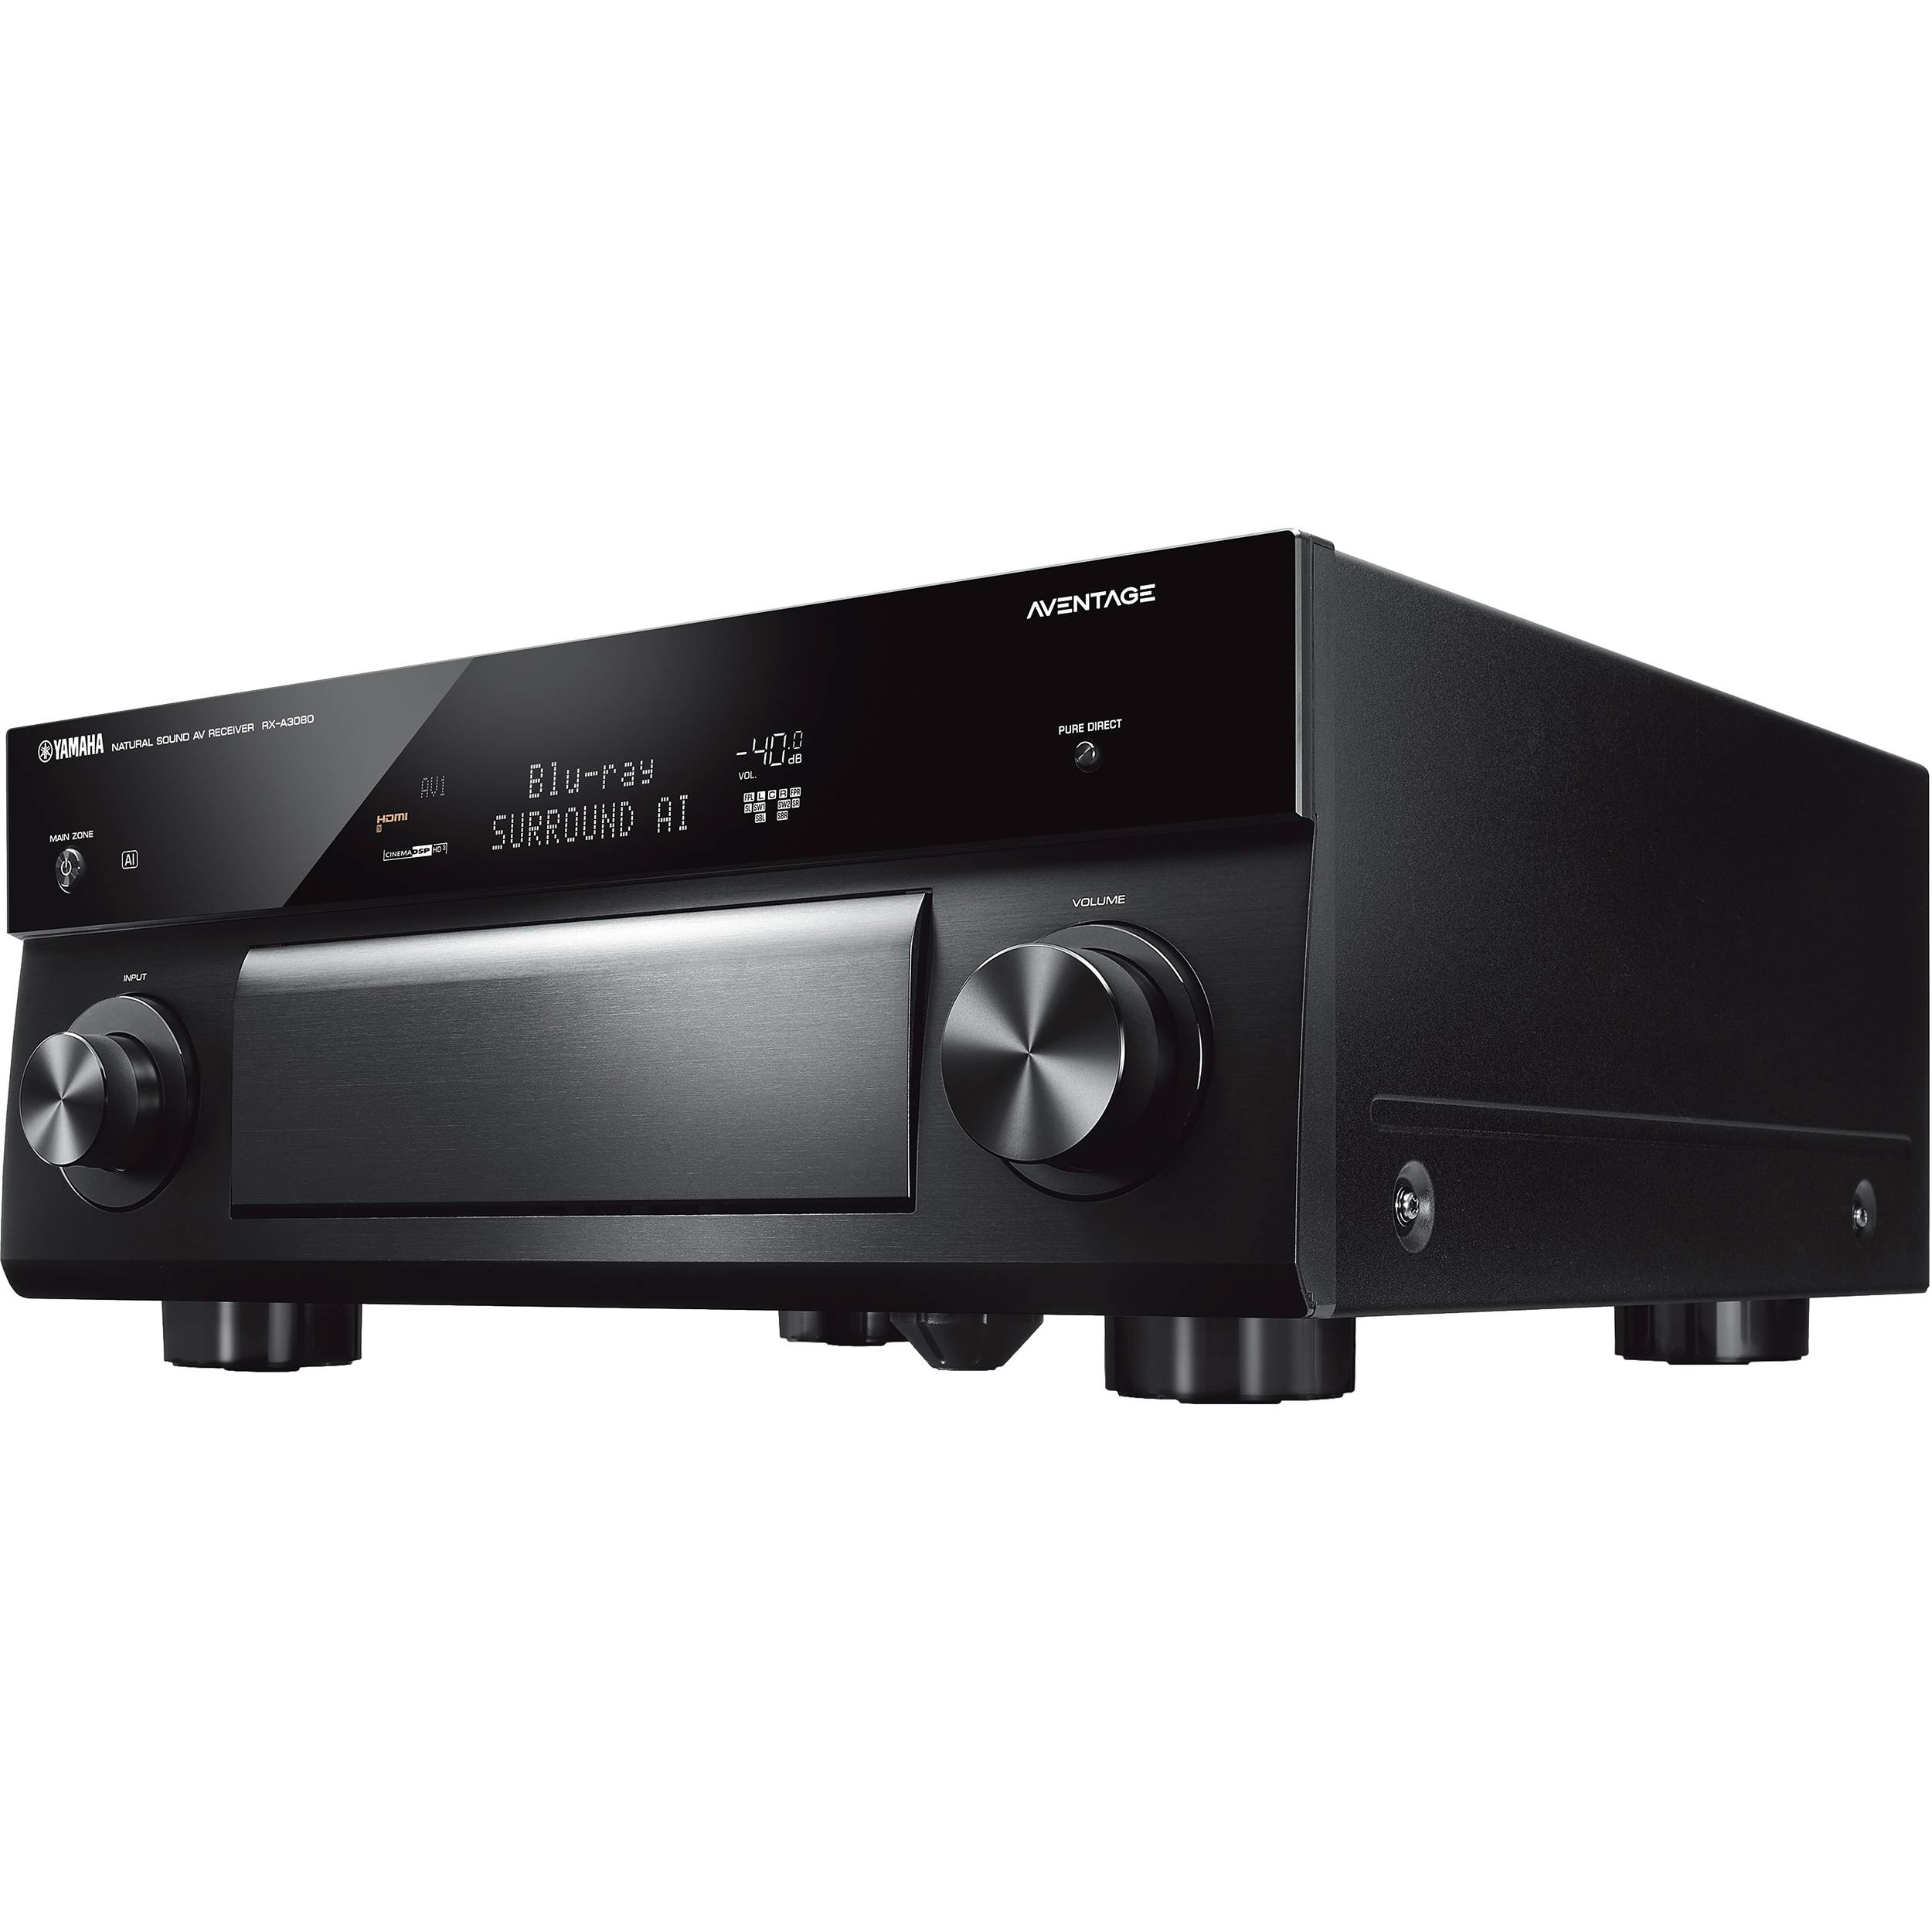 Yamaha AVENTAGE RX-A3080 9 2-Channel Network A/V Receiver